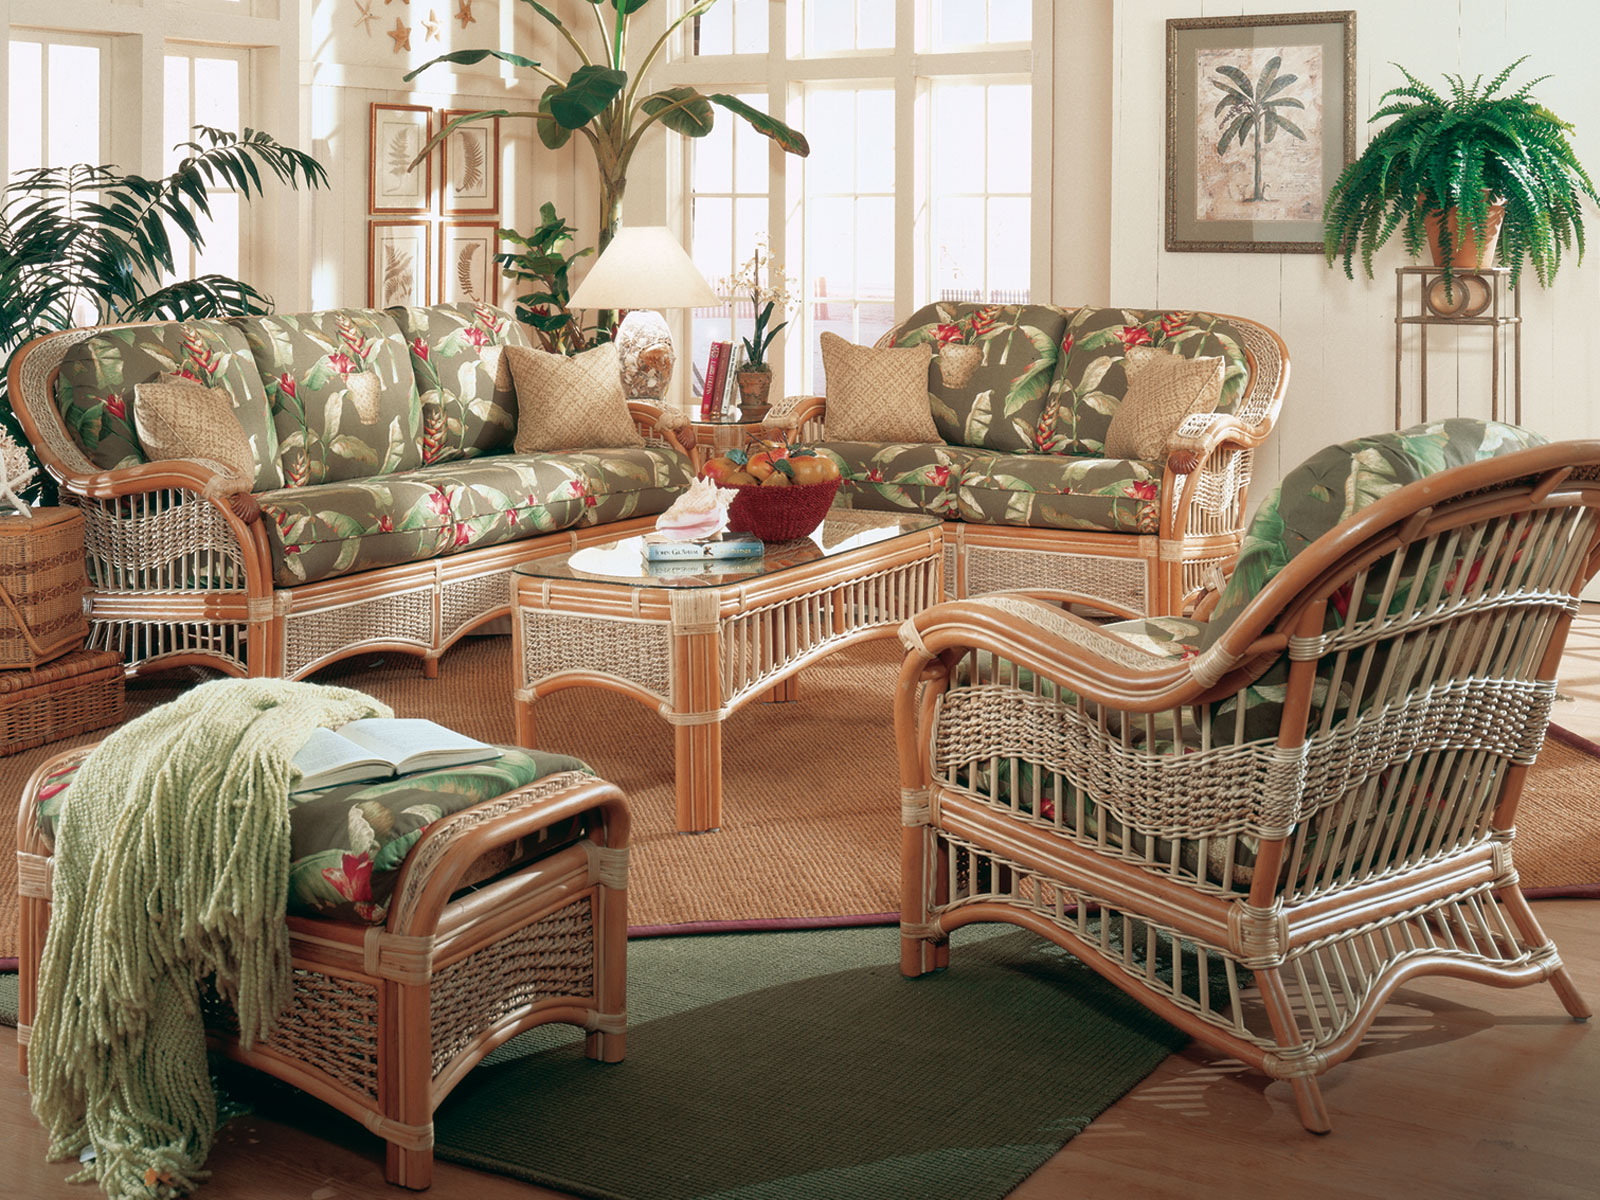 Seascape Rattan 5 Piece Sunroom Set Model Ss Set From Spice Island pertaining to Rattan Living Room Set